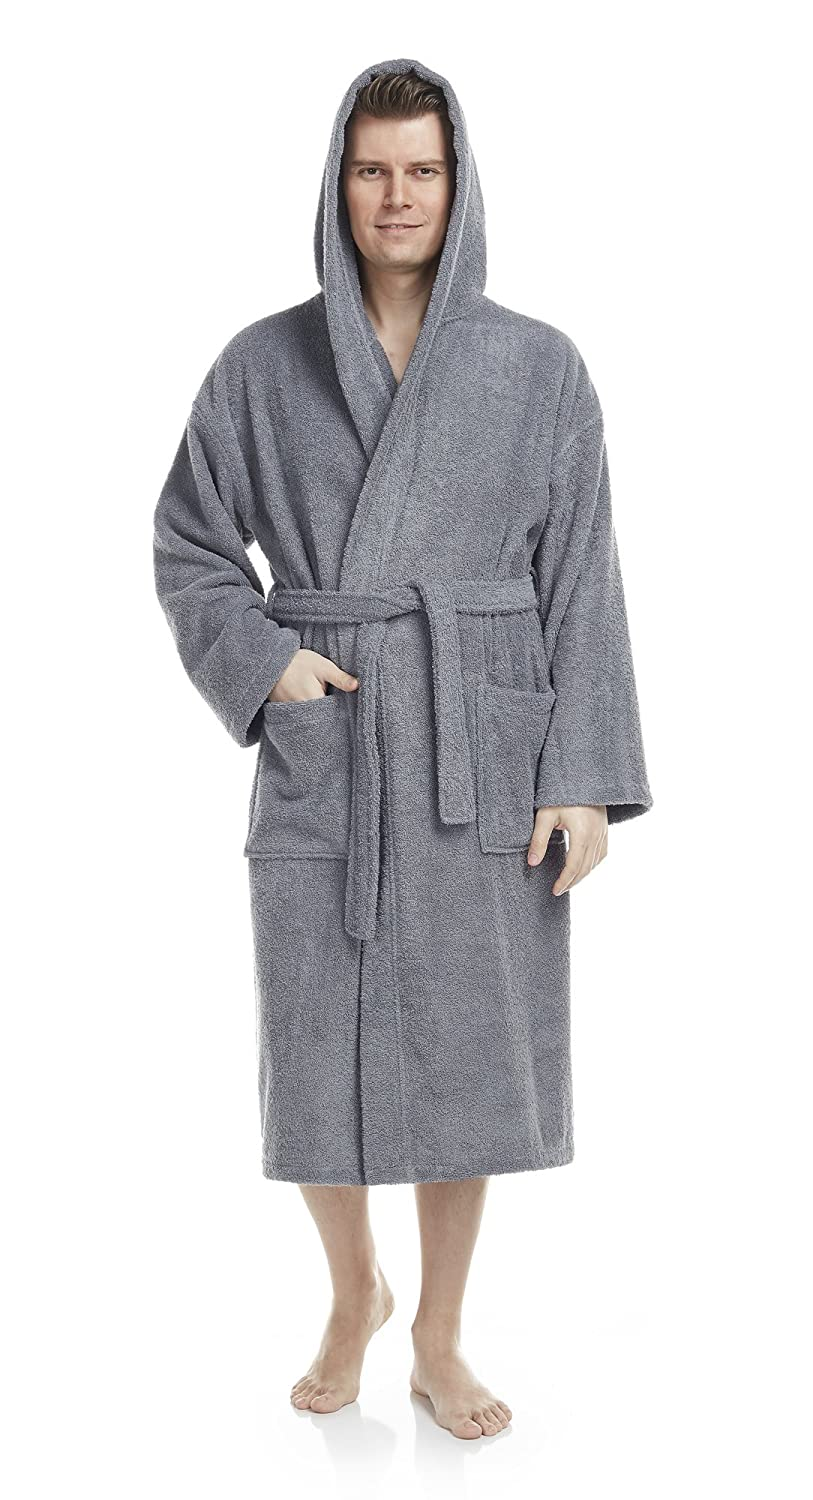 Arus Men's Classic Hooded Bathrobe Turkish Cotton Terry Cloth Robe Arus Marketing